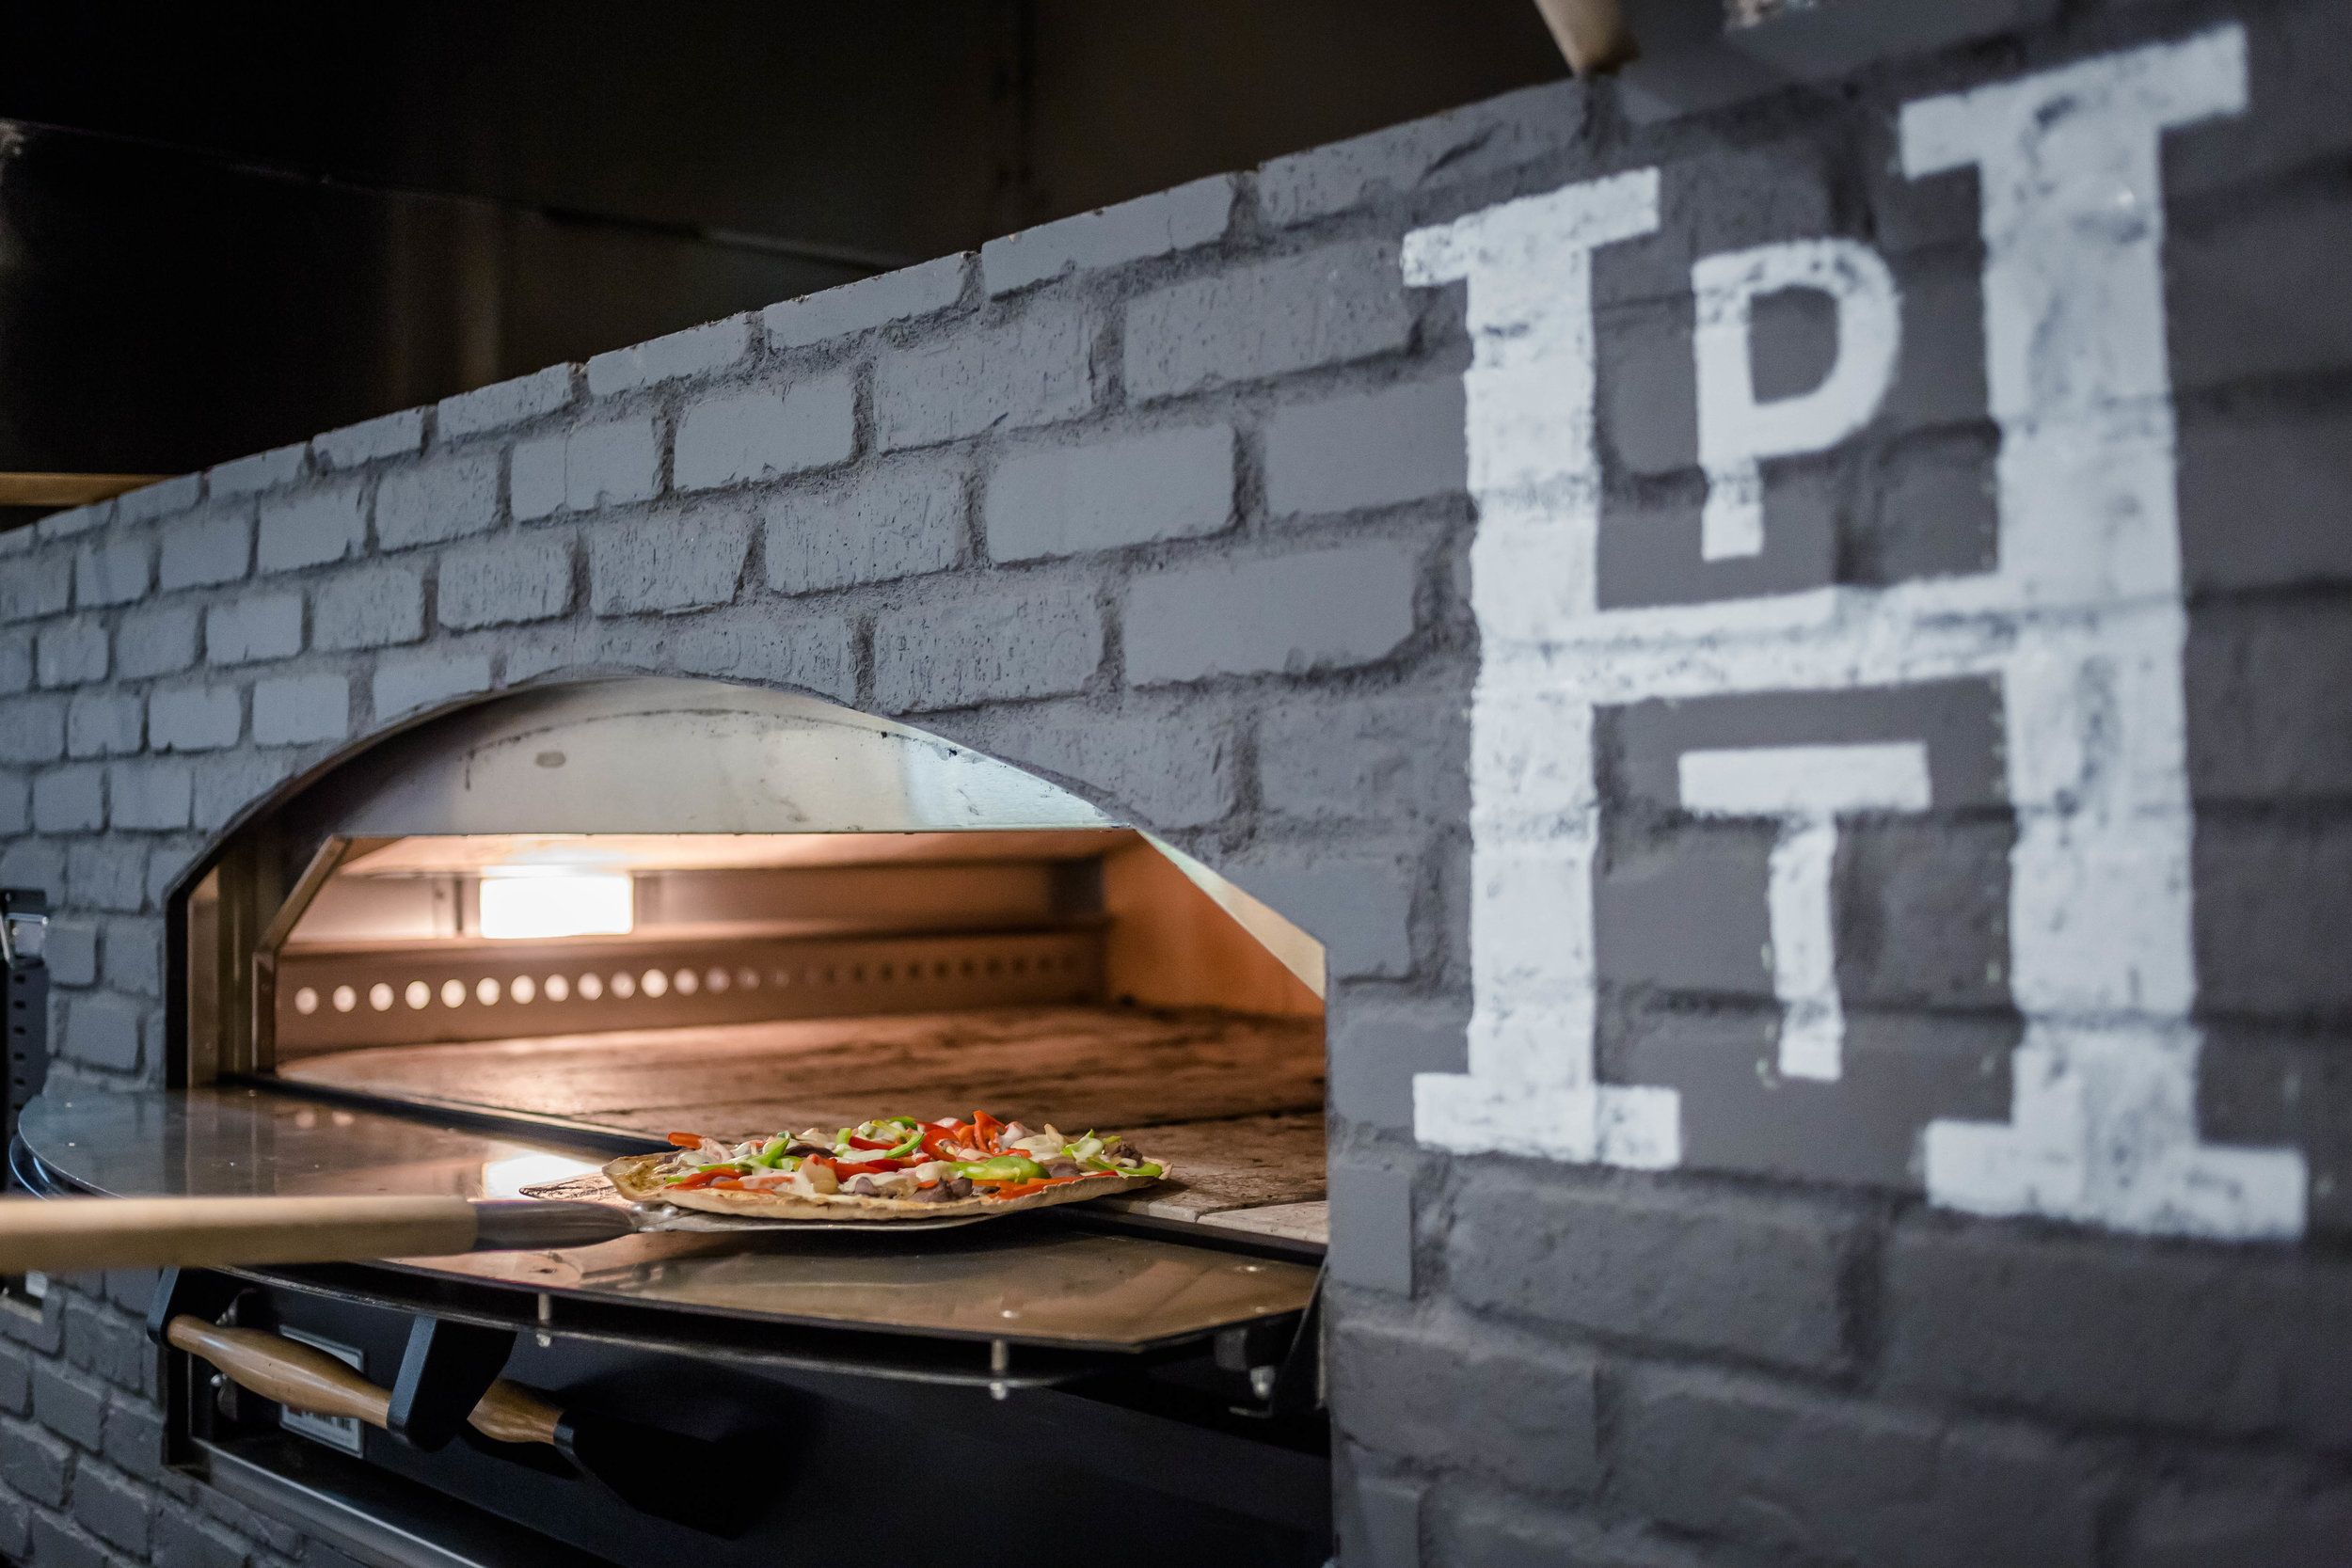 INTERIOR-PIZZA-OVEN-3.jpg